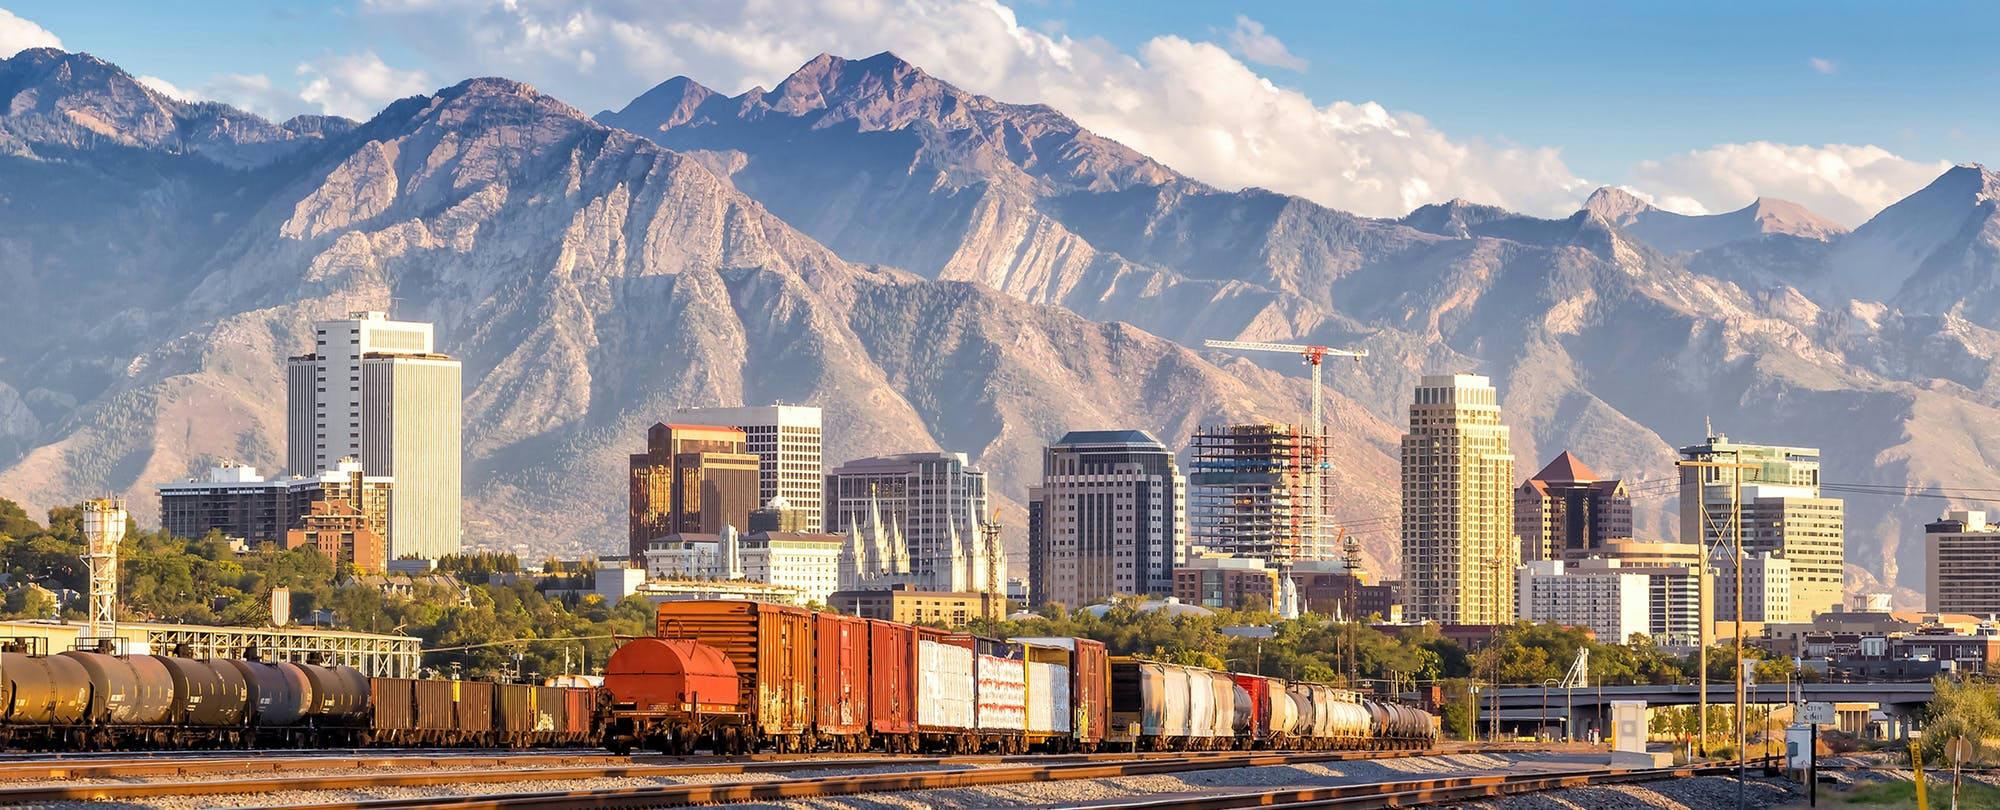 Saddle Up for Silicon Slopes! Our Guide to the 2017 ASU+GSV Summit